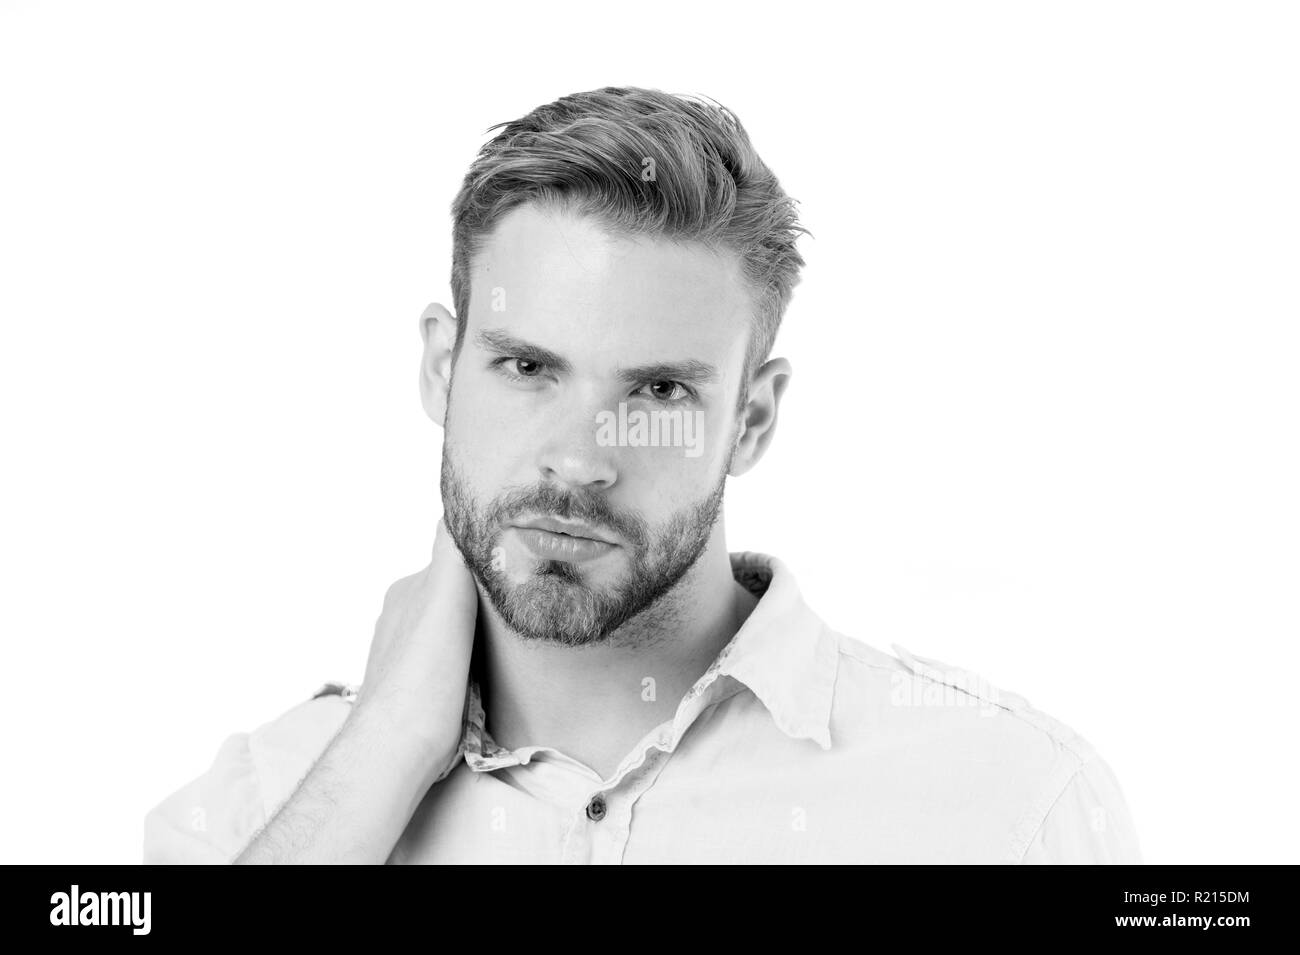 Neck pain causes symptoms and diagnosis. Man serious face touches neck white background. How to give good neck massage. Why does my neck hurt. When to worry about pain. - Stock Image